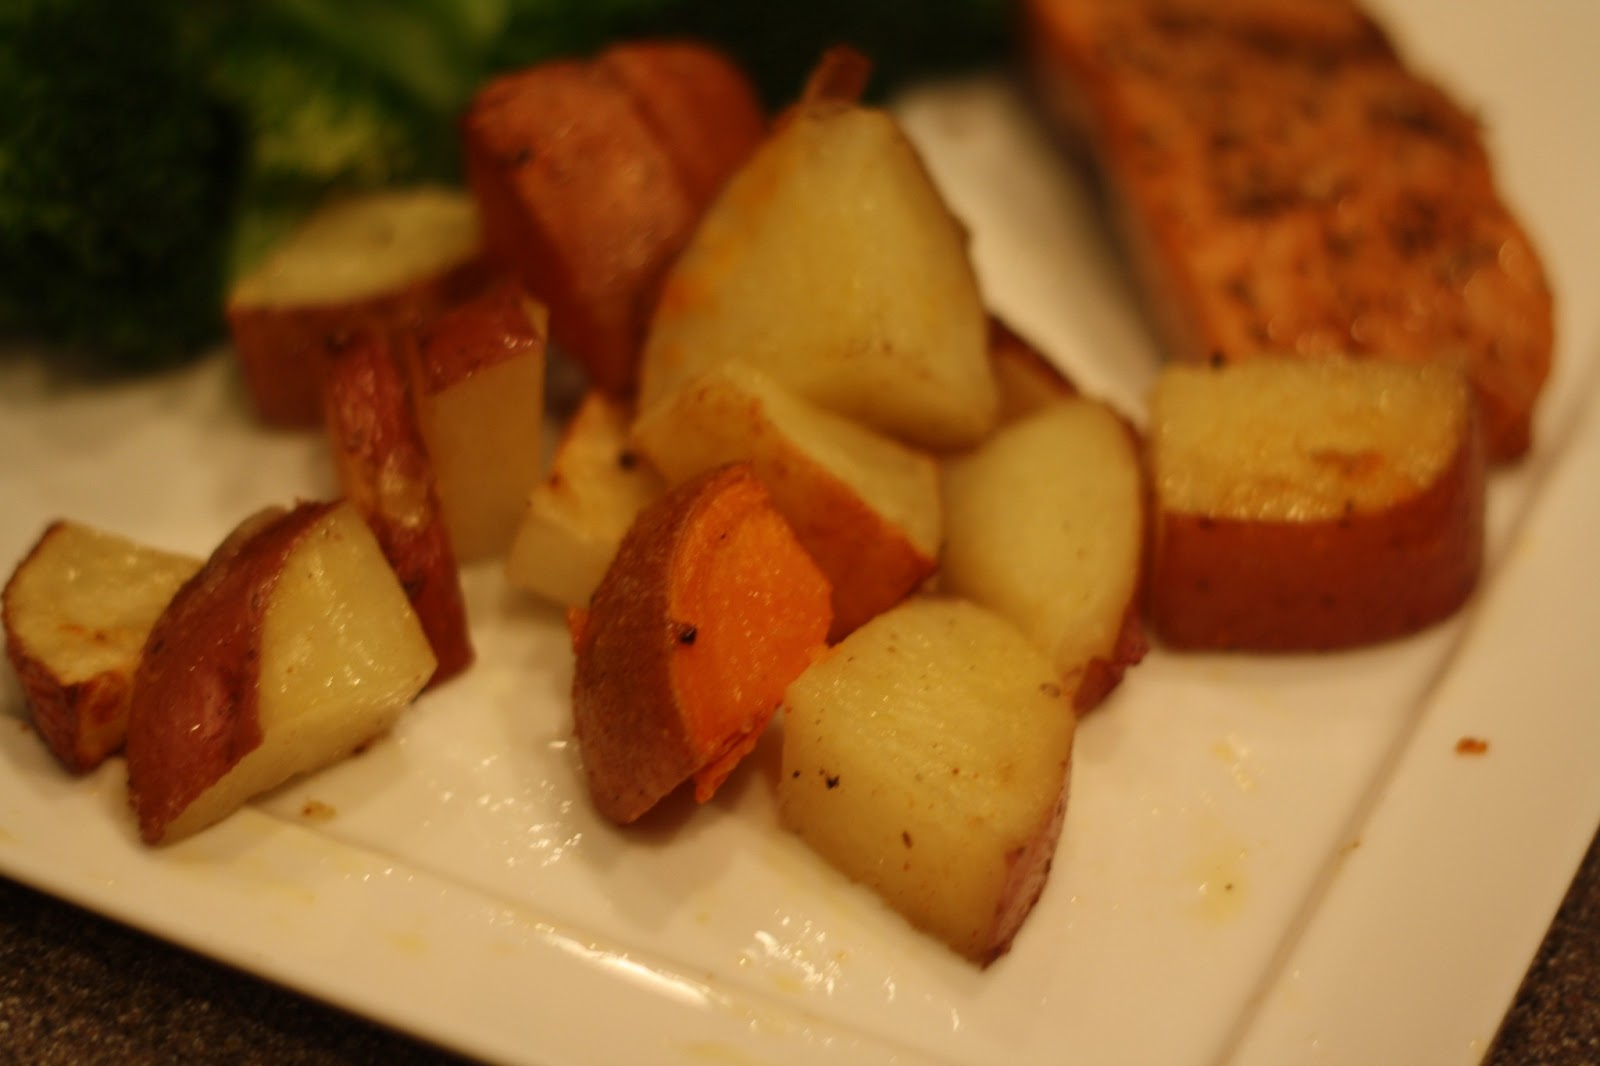 The Food Gospel According to Ruth: Easy Oven Roasted New Potatoes